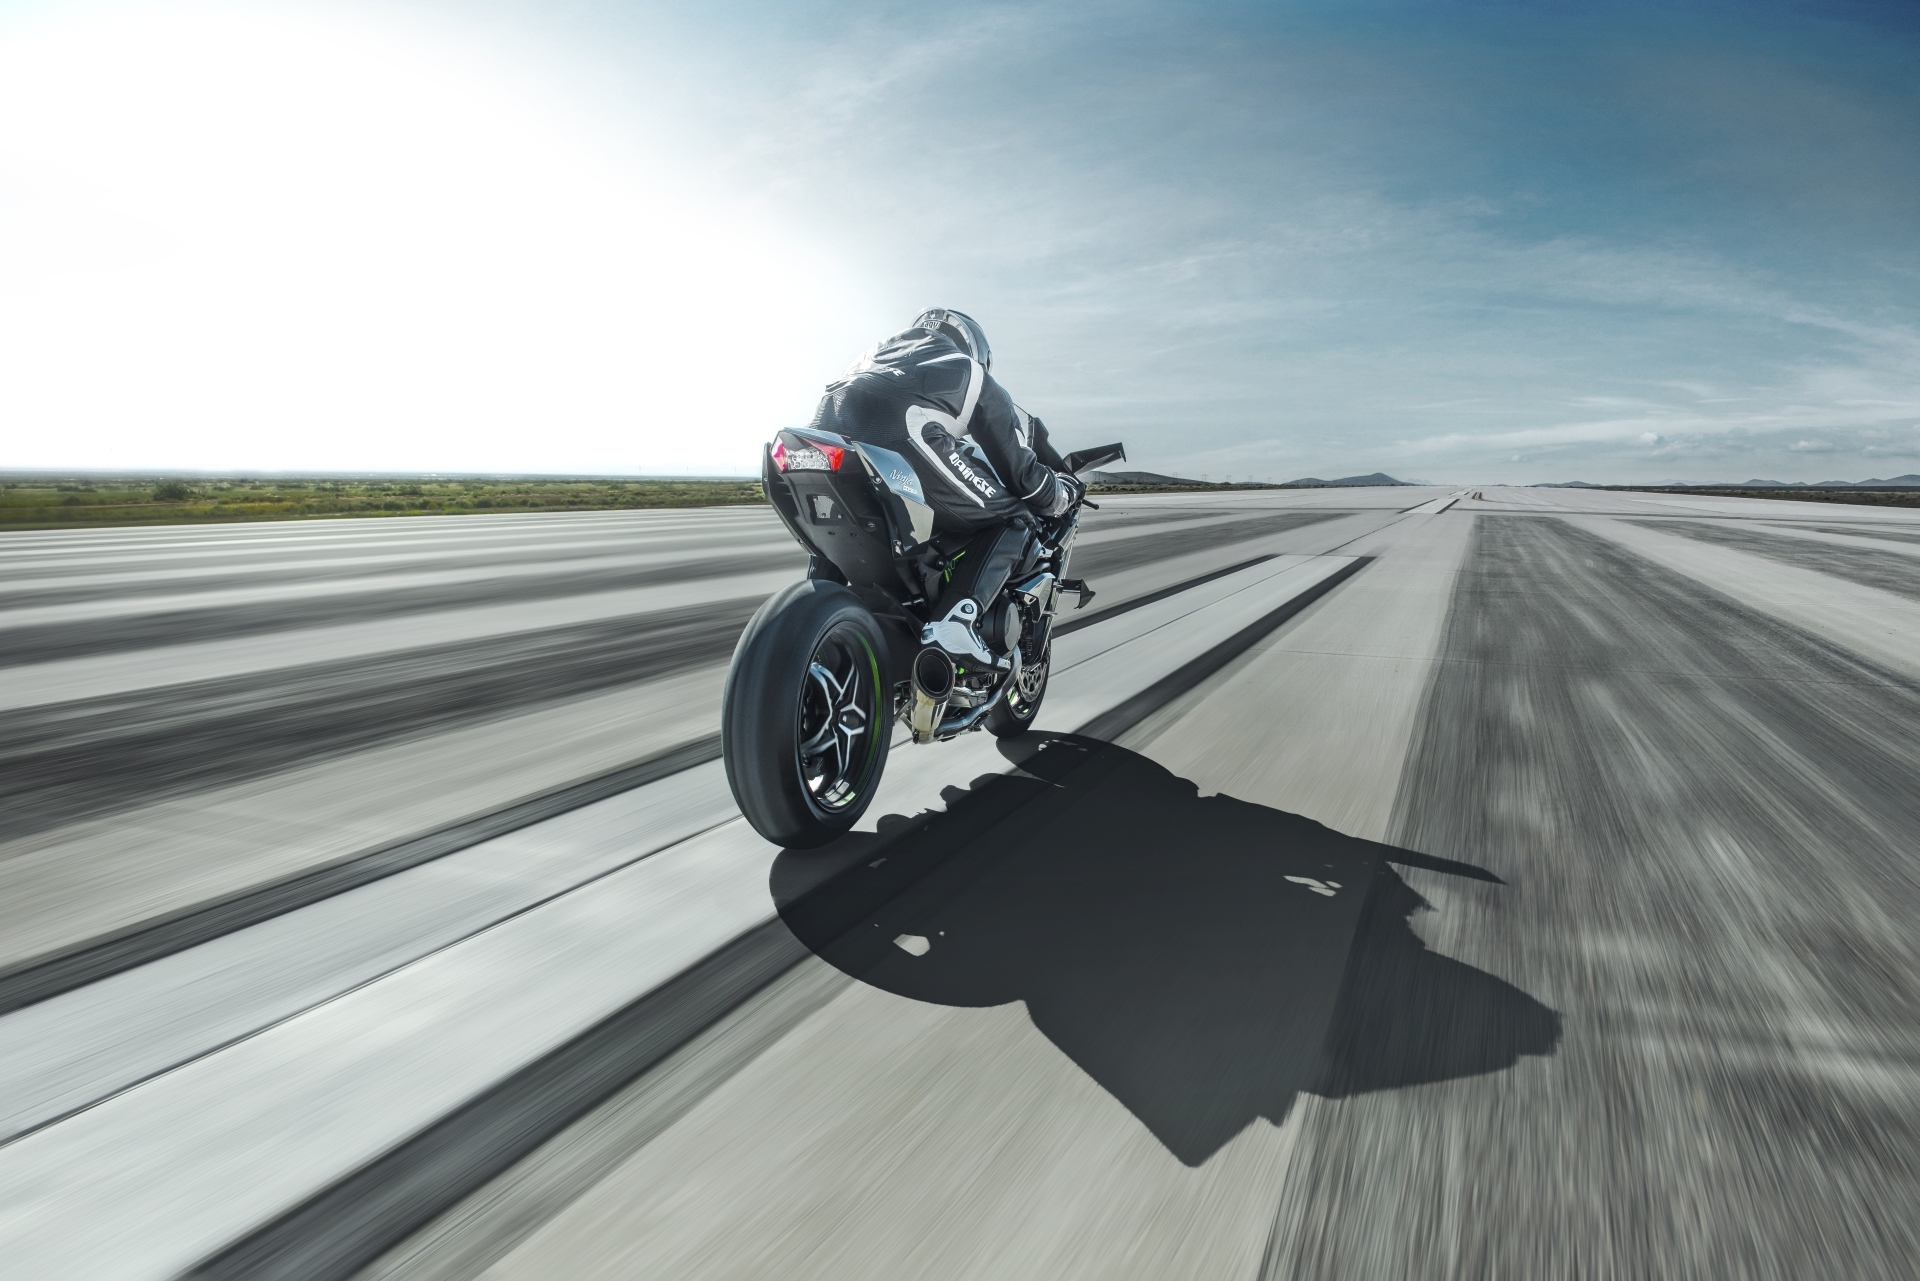 Kawasaki Ninja H2r Does Over 220 Mph Is This Fast Enough For You